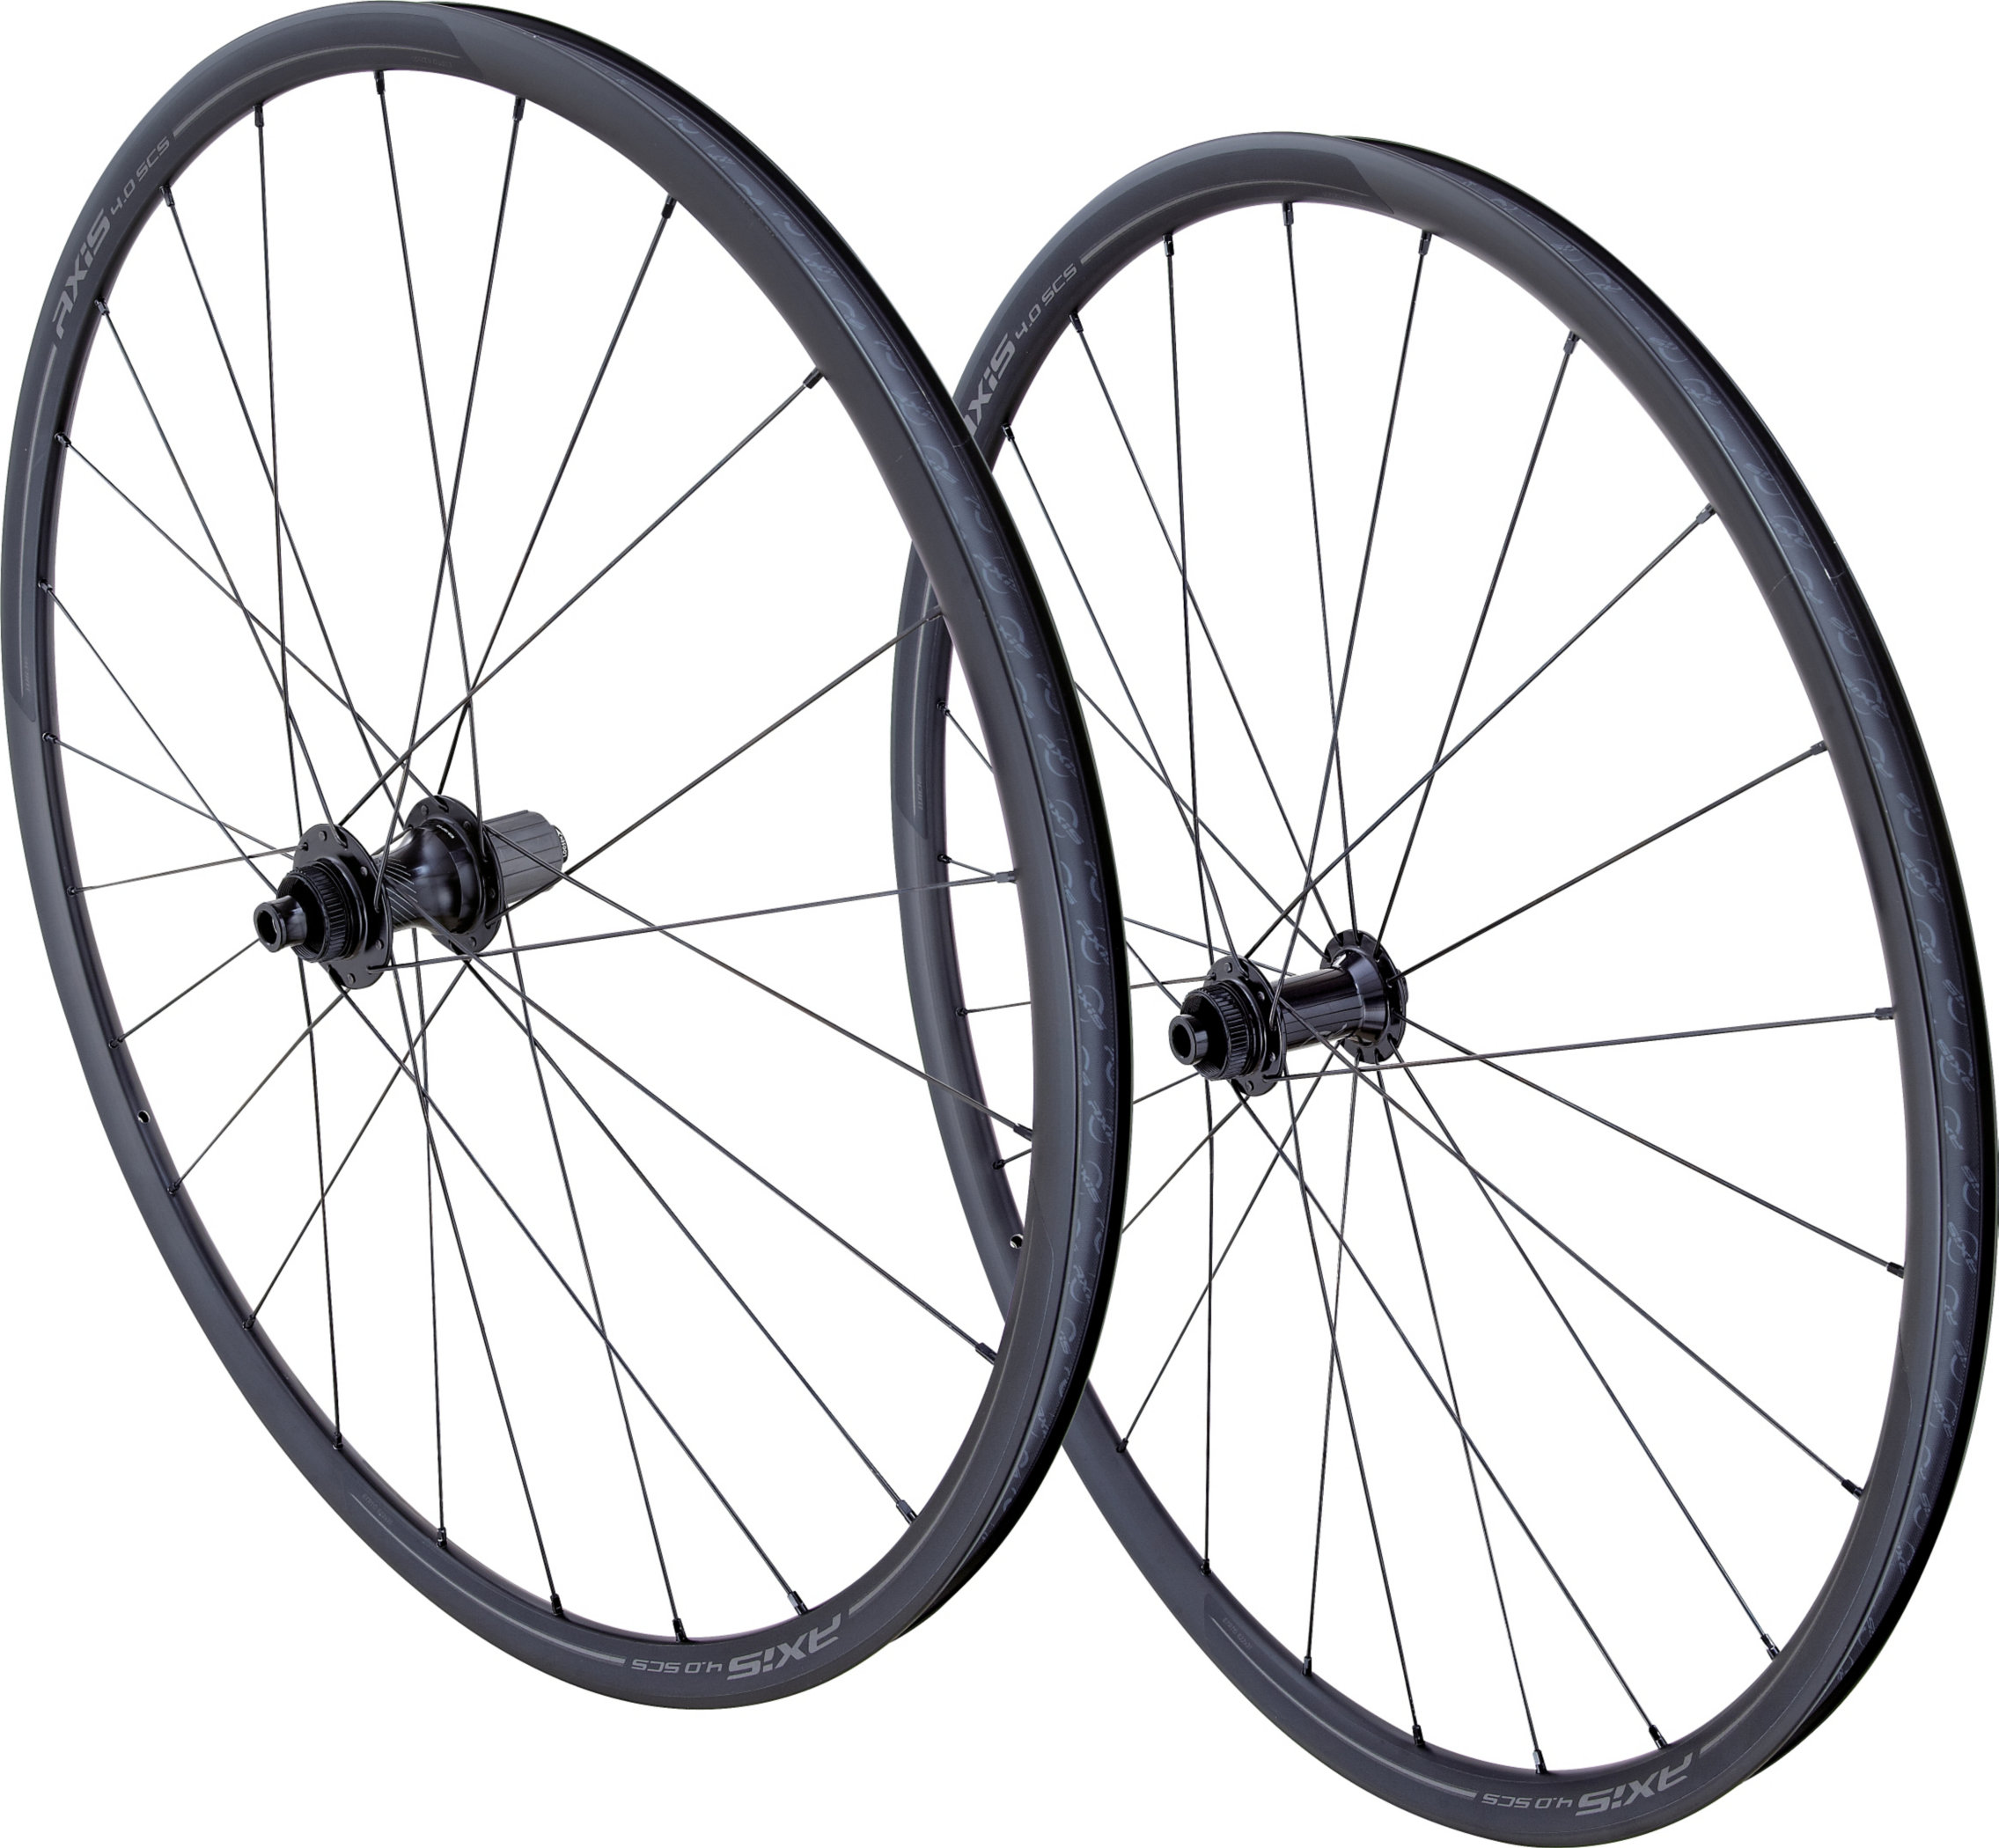 SPECIALIZED AXIS 4.0 DISC SCS TA WHEELSET BLK ANO/CHAR - Alpha Bikes